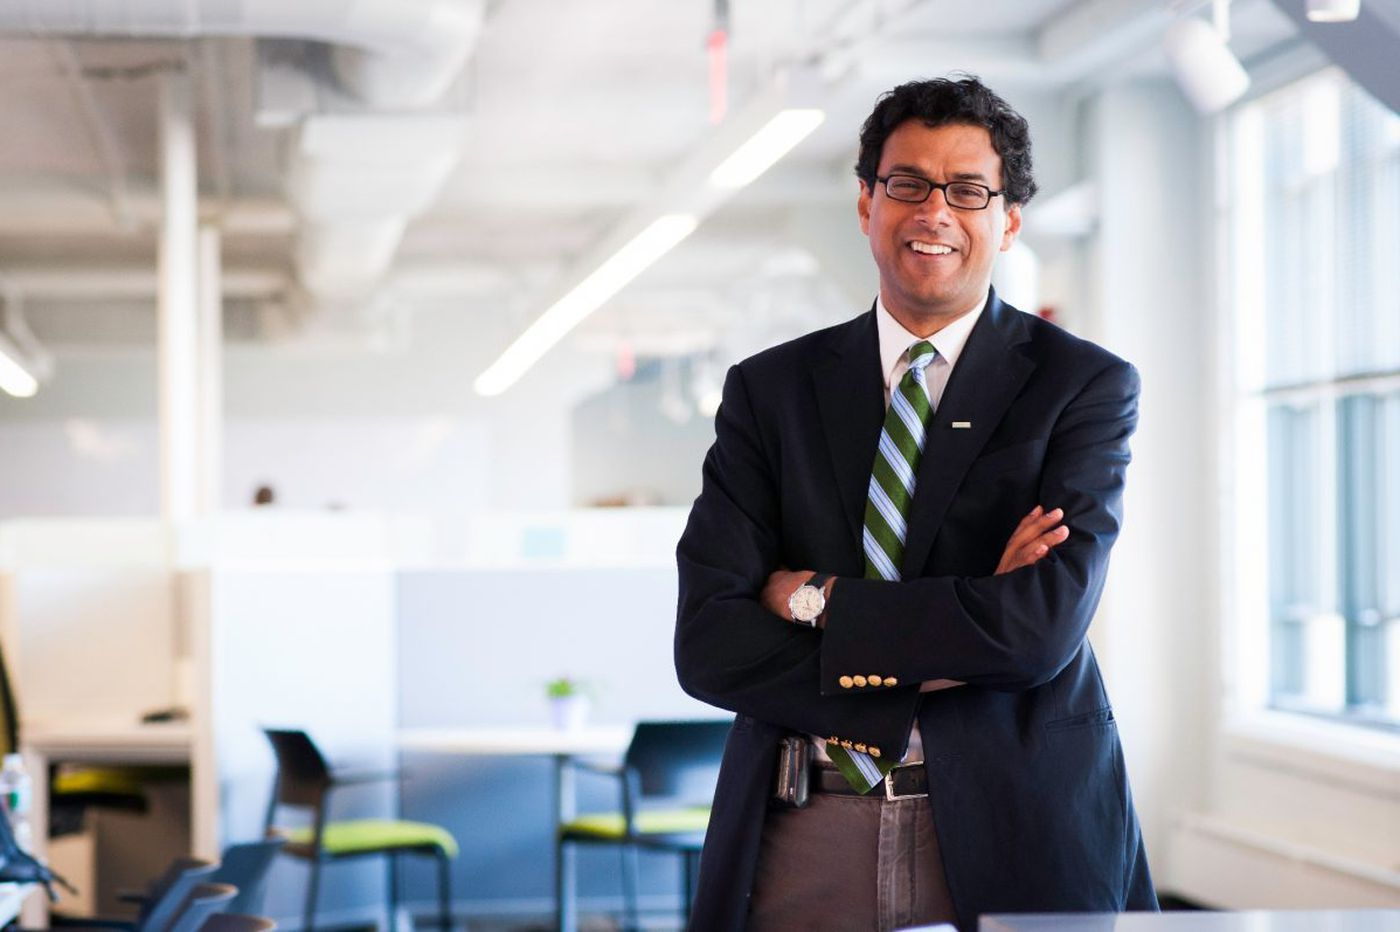 Atul Gawande, author of 'Being Mortal,' to speak on senior 'villages' as movement turns 15